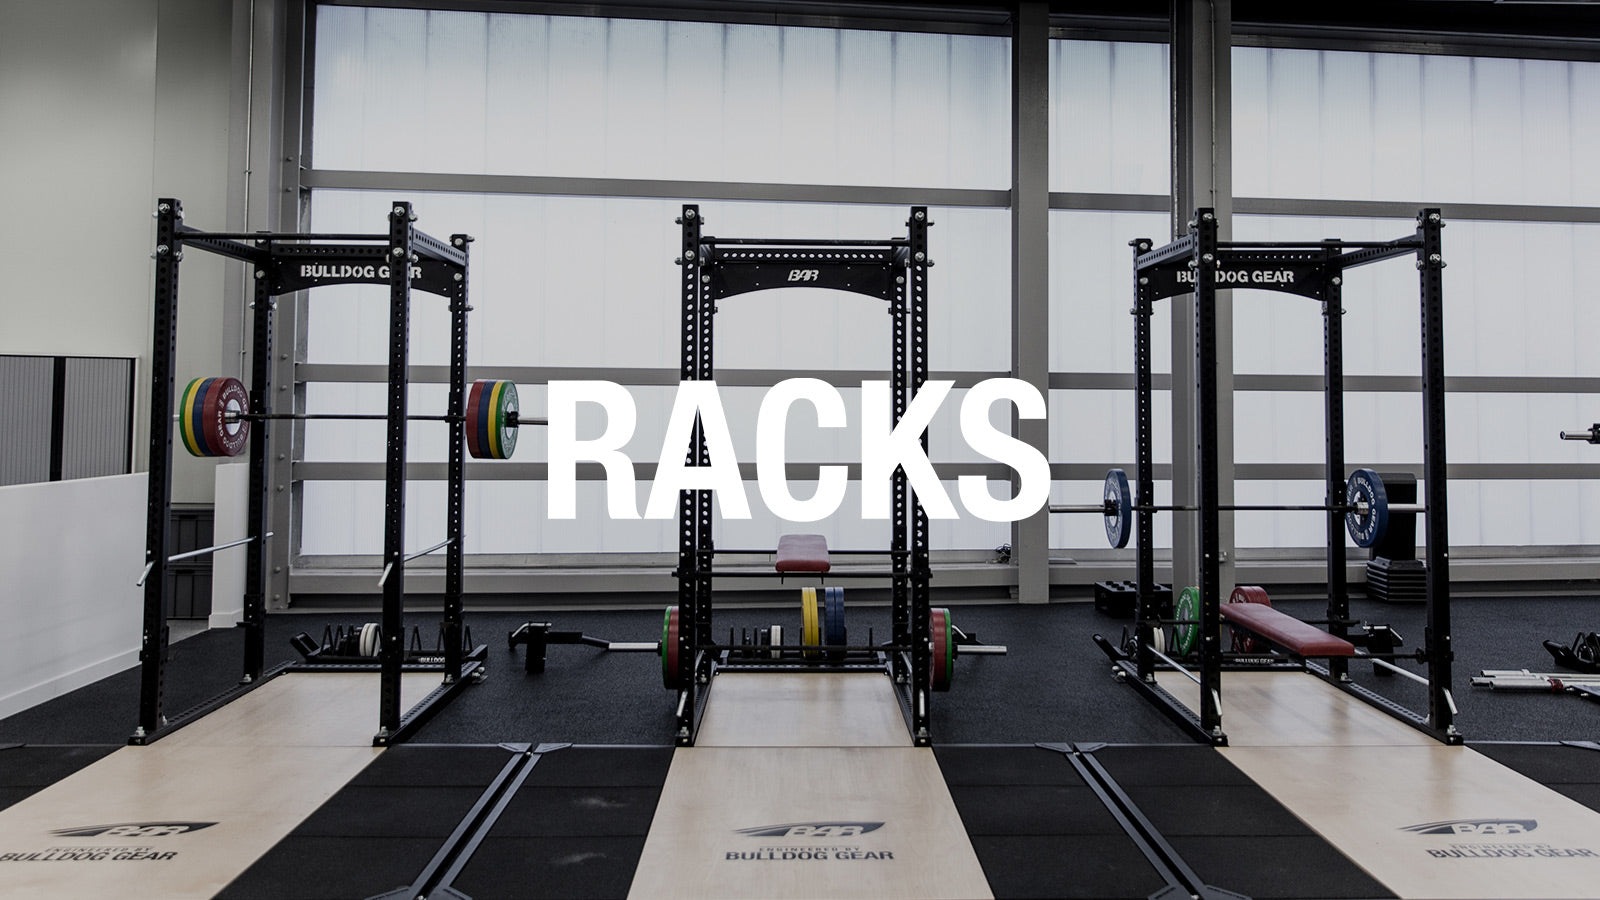 Racks crossfit gym equipment